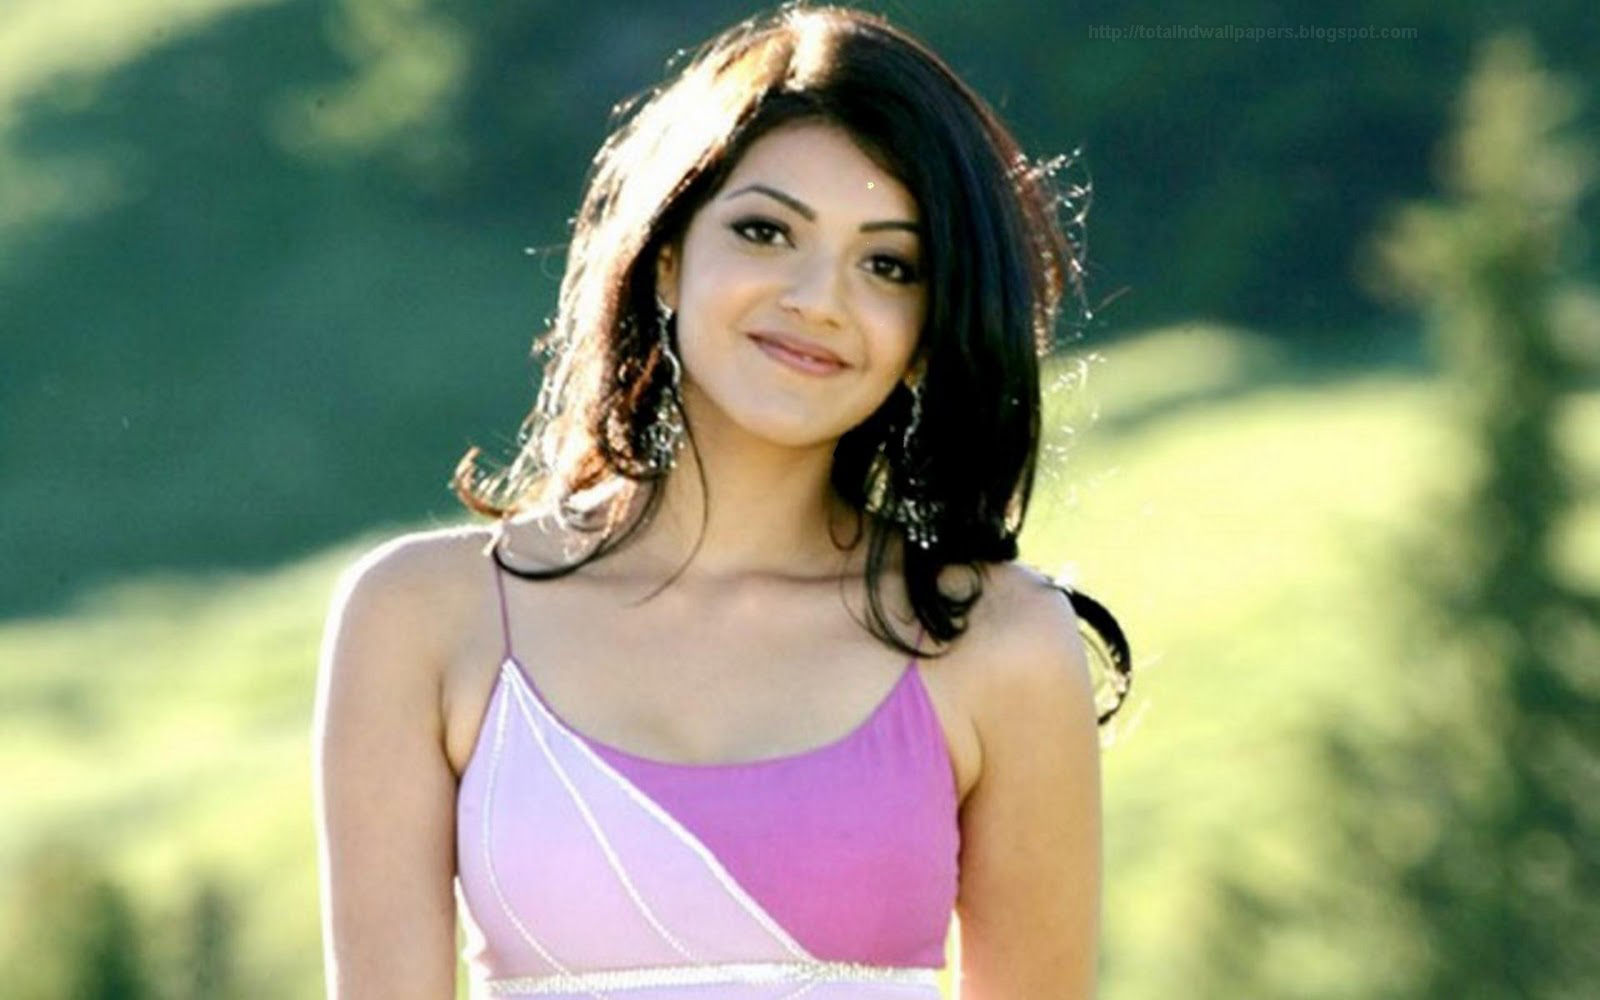 Latest Bollywood Wallpapers Bollywood Actress HD Wallpapers 1080p 1600x1000